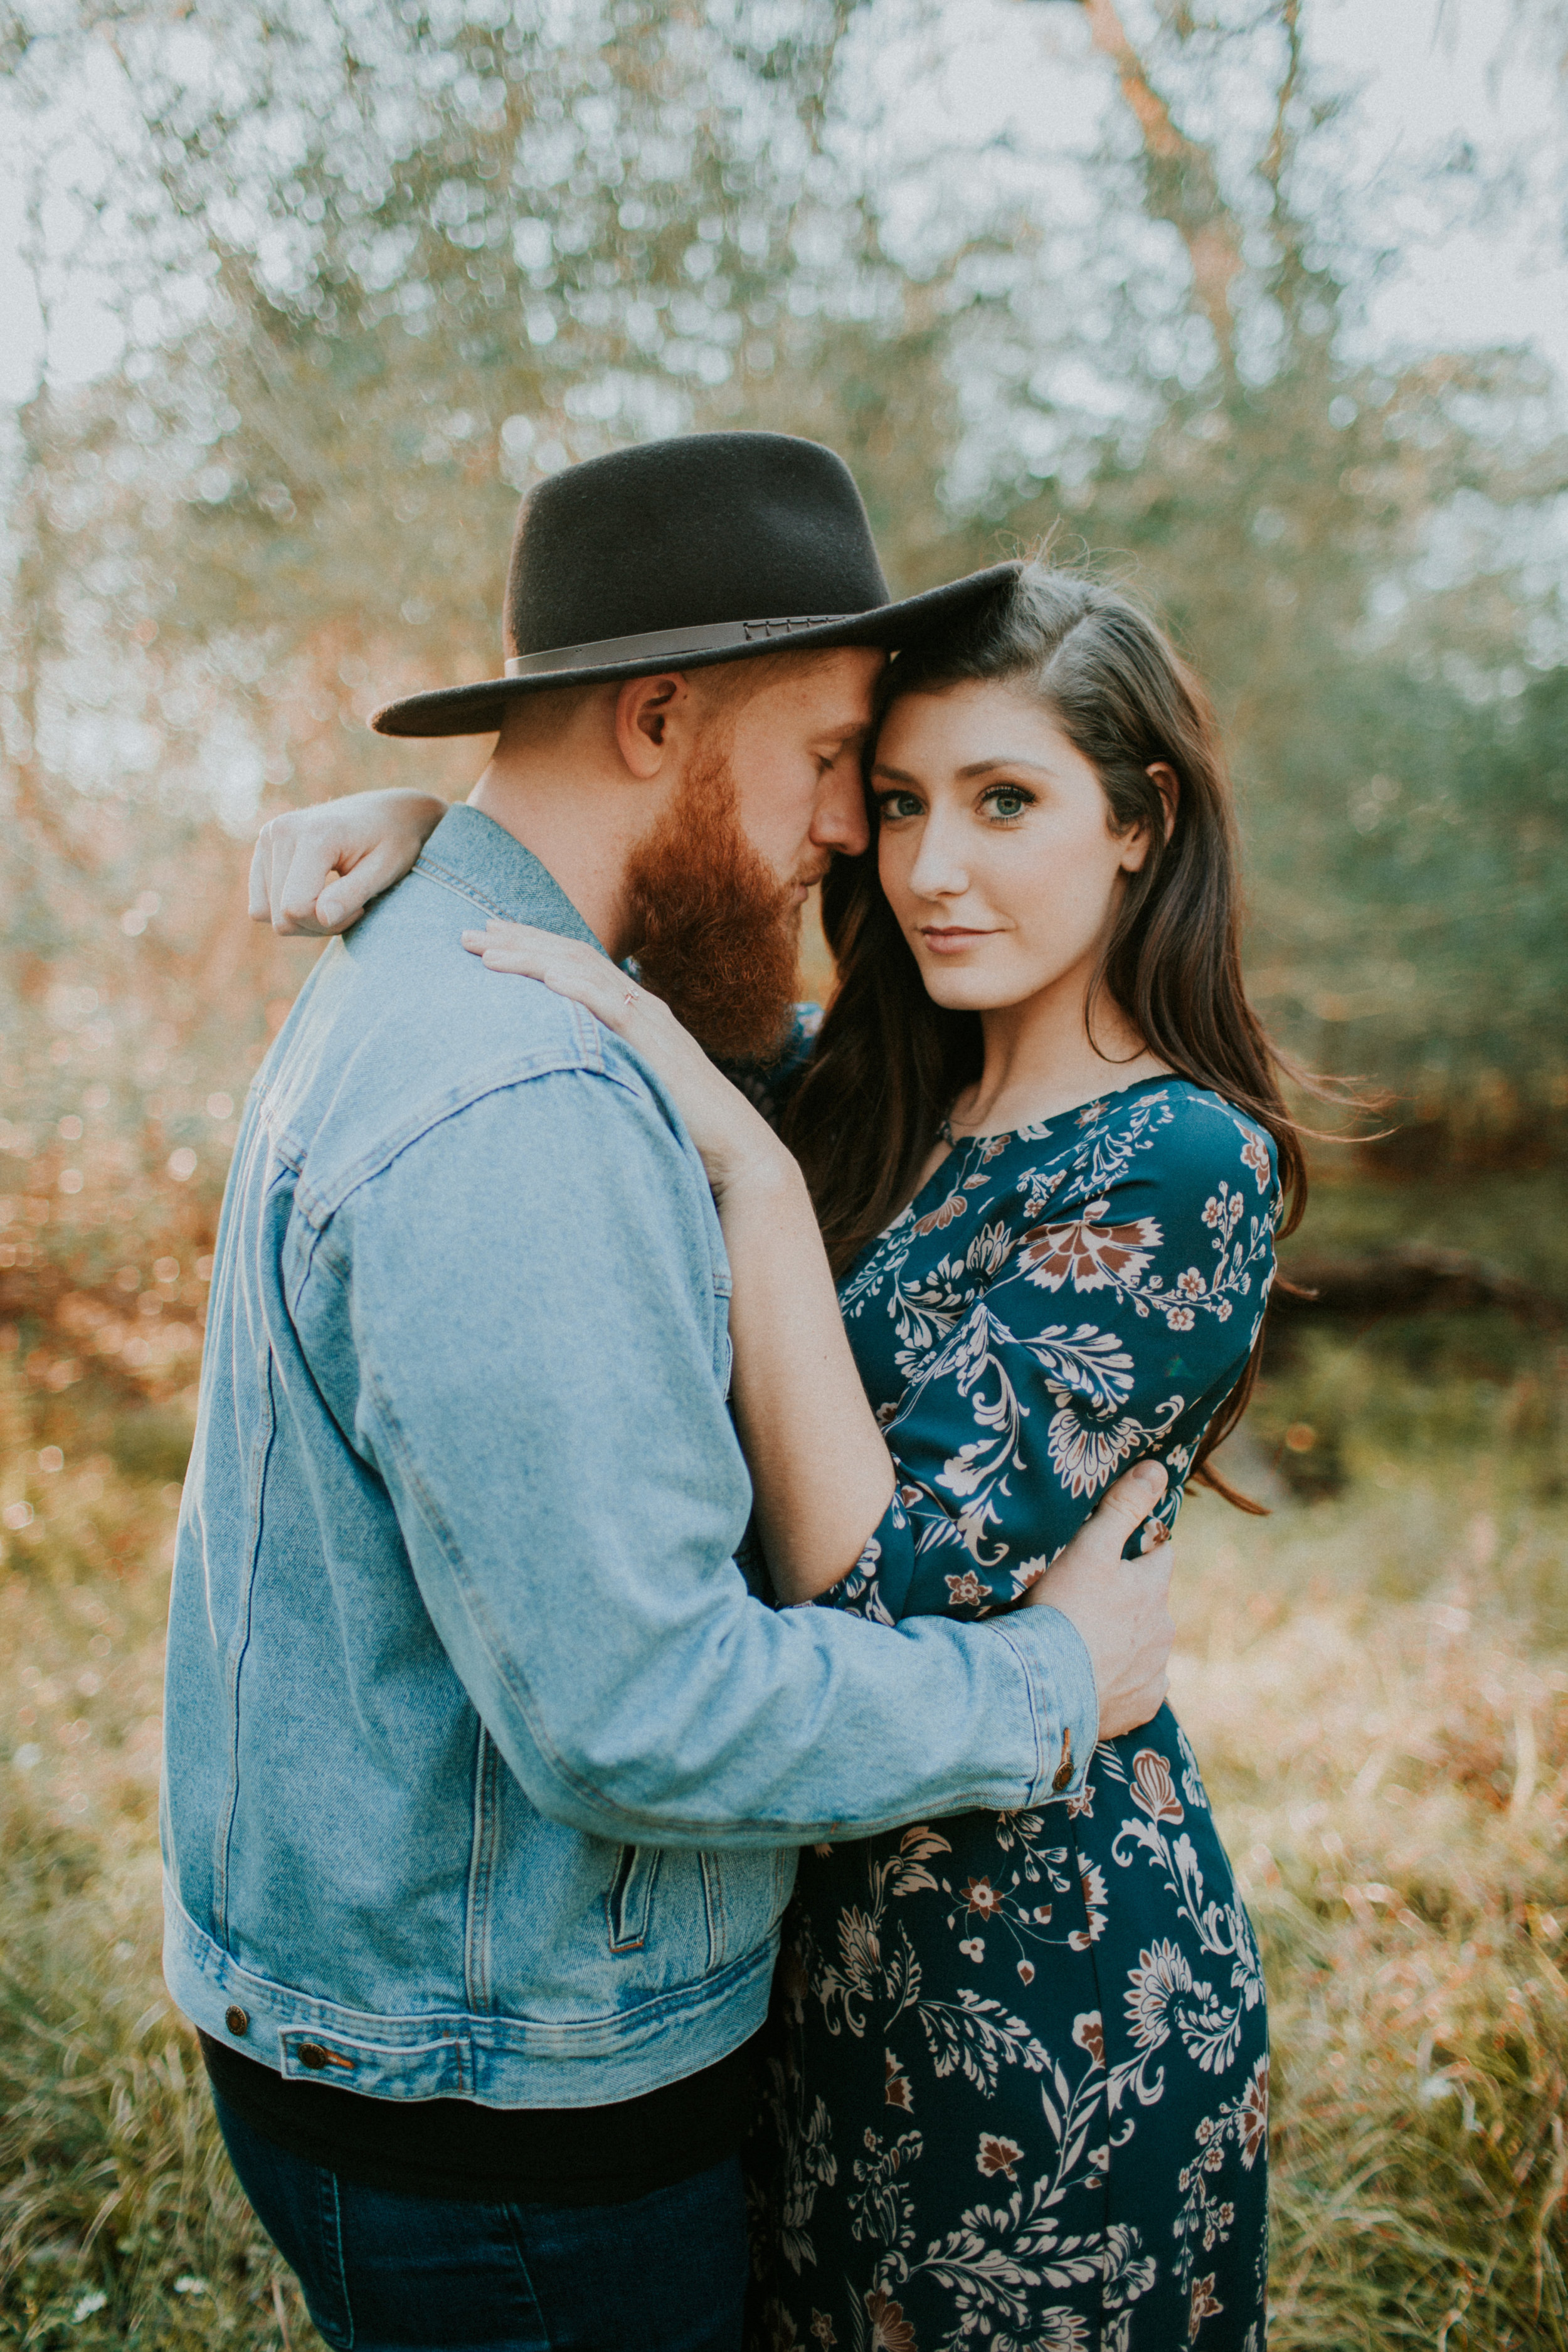 Erin_and_Jacob___The_Frost_Collective_Engagement_Session_1243.jpg